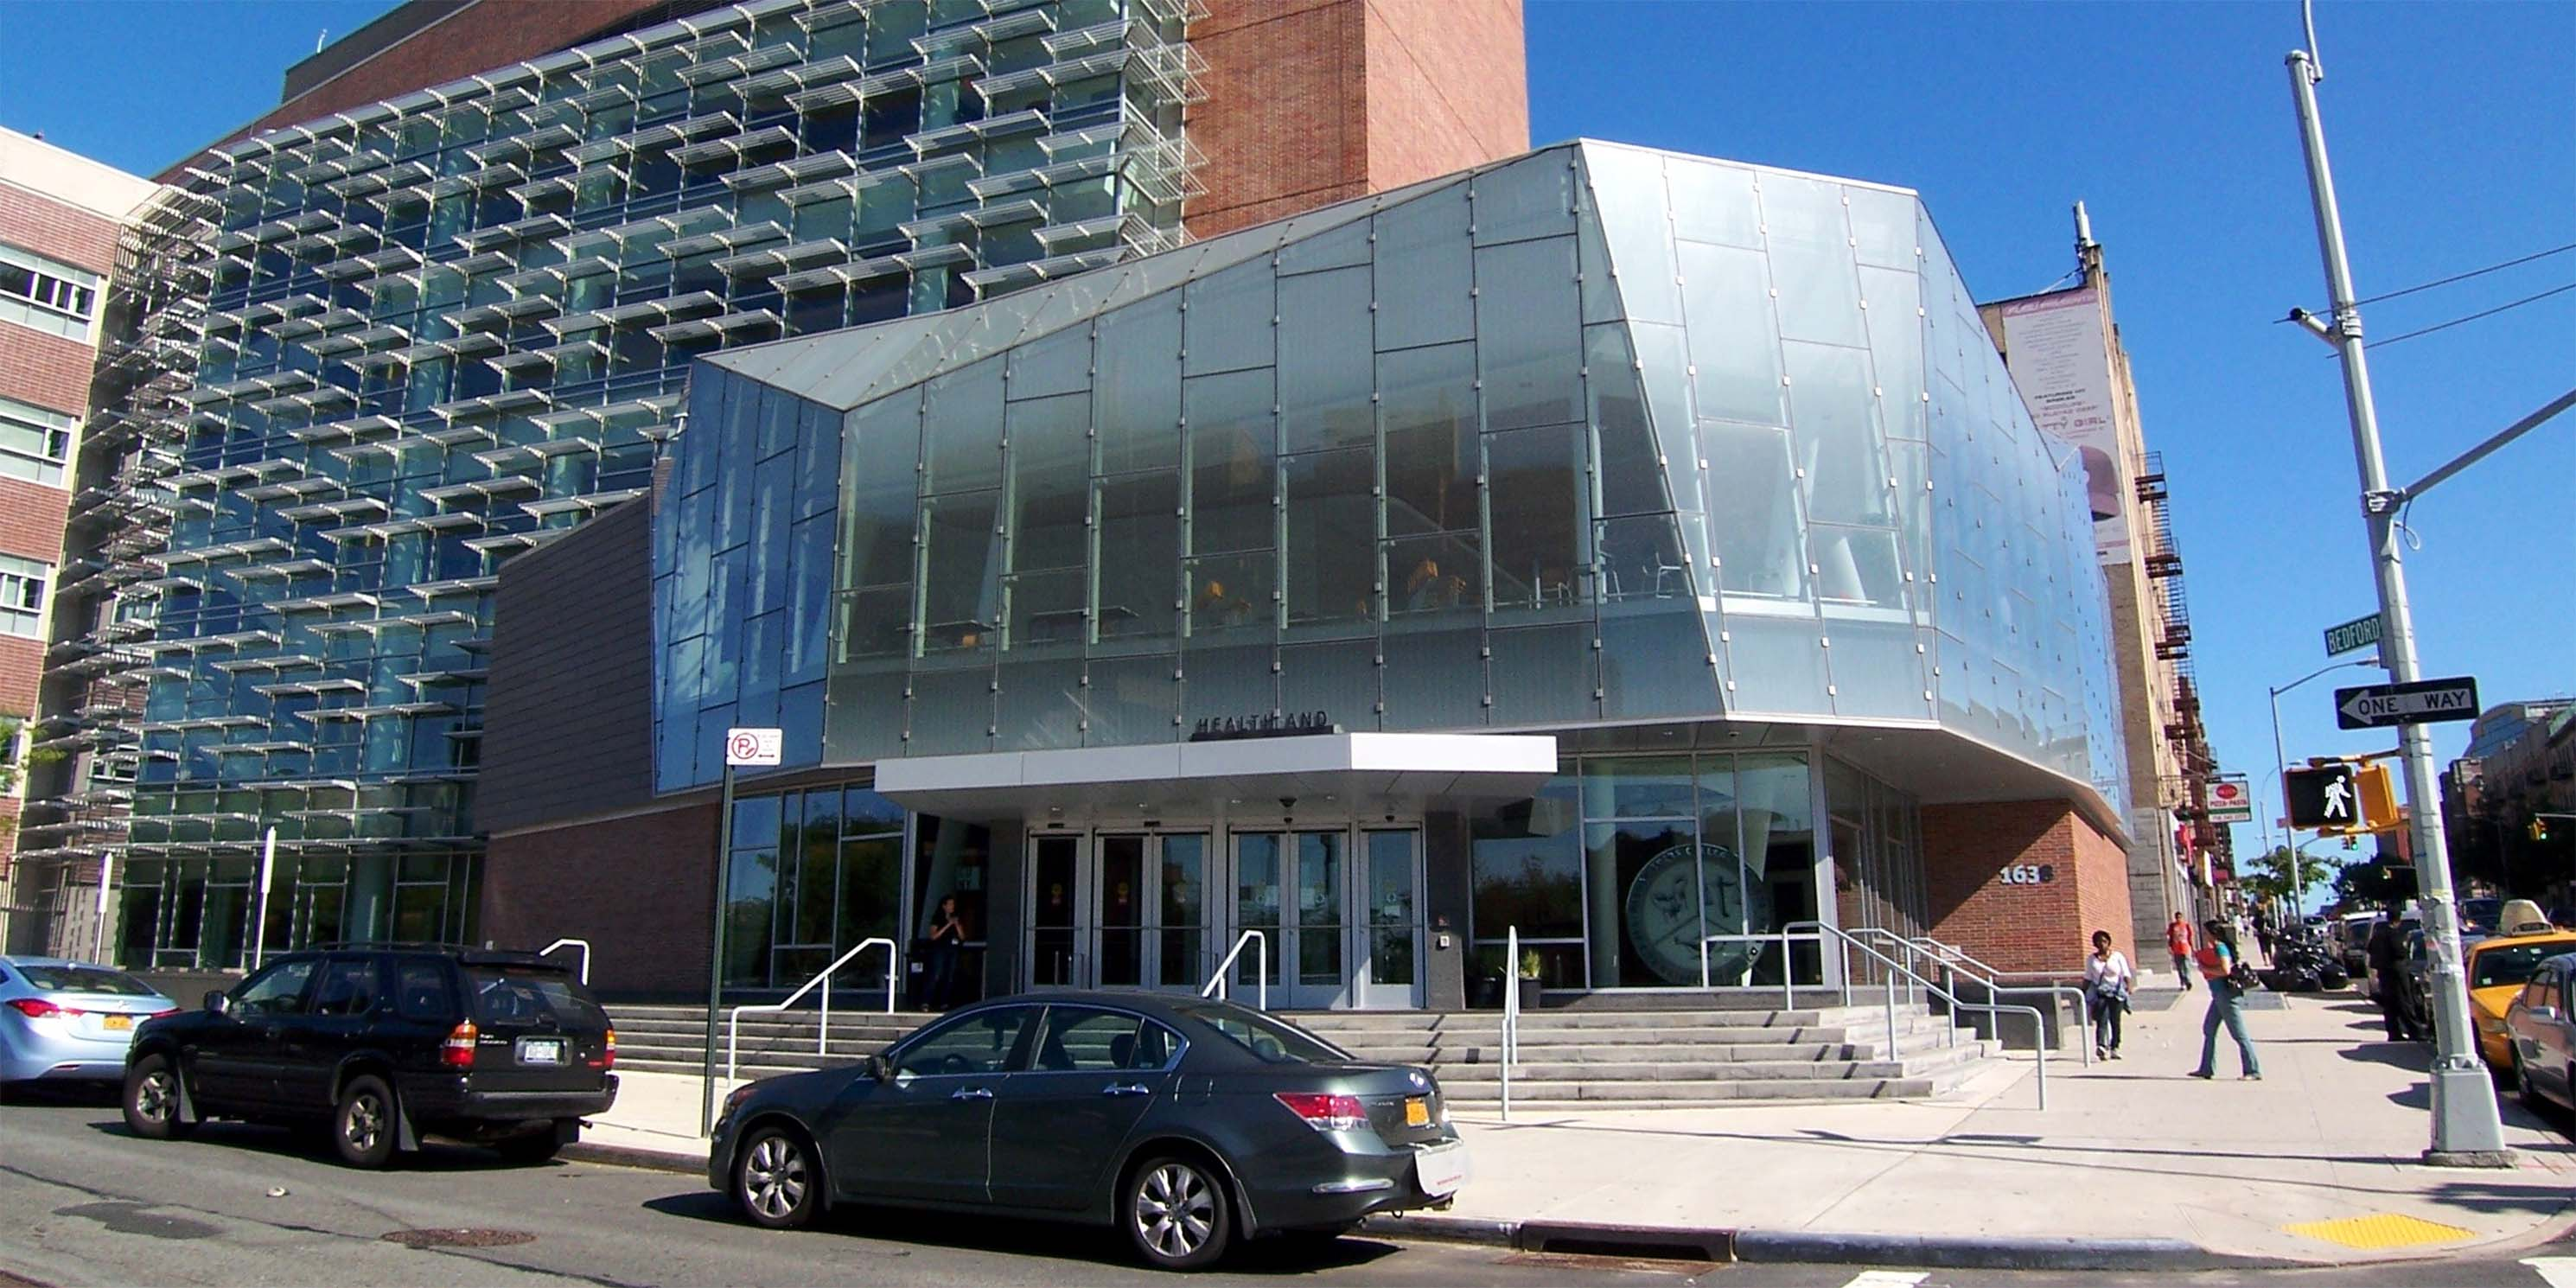 Street view of Medgar Evers College Building A